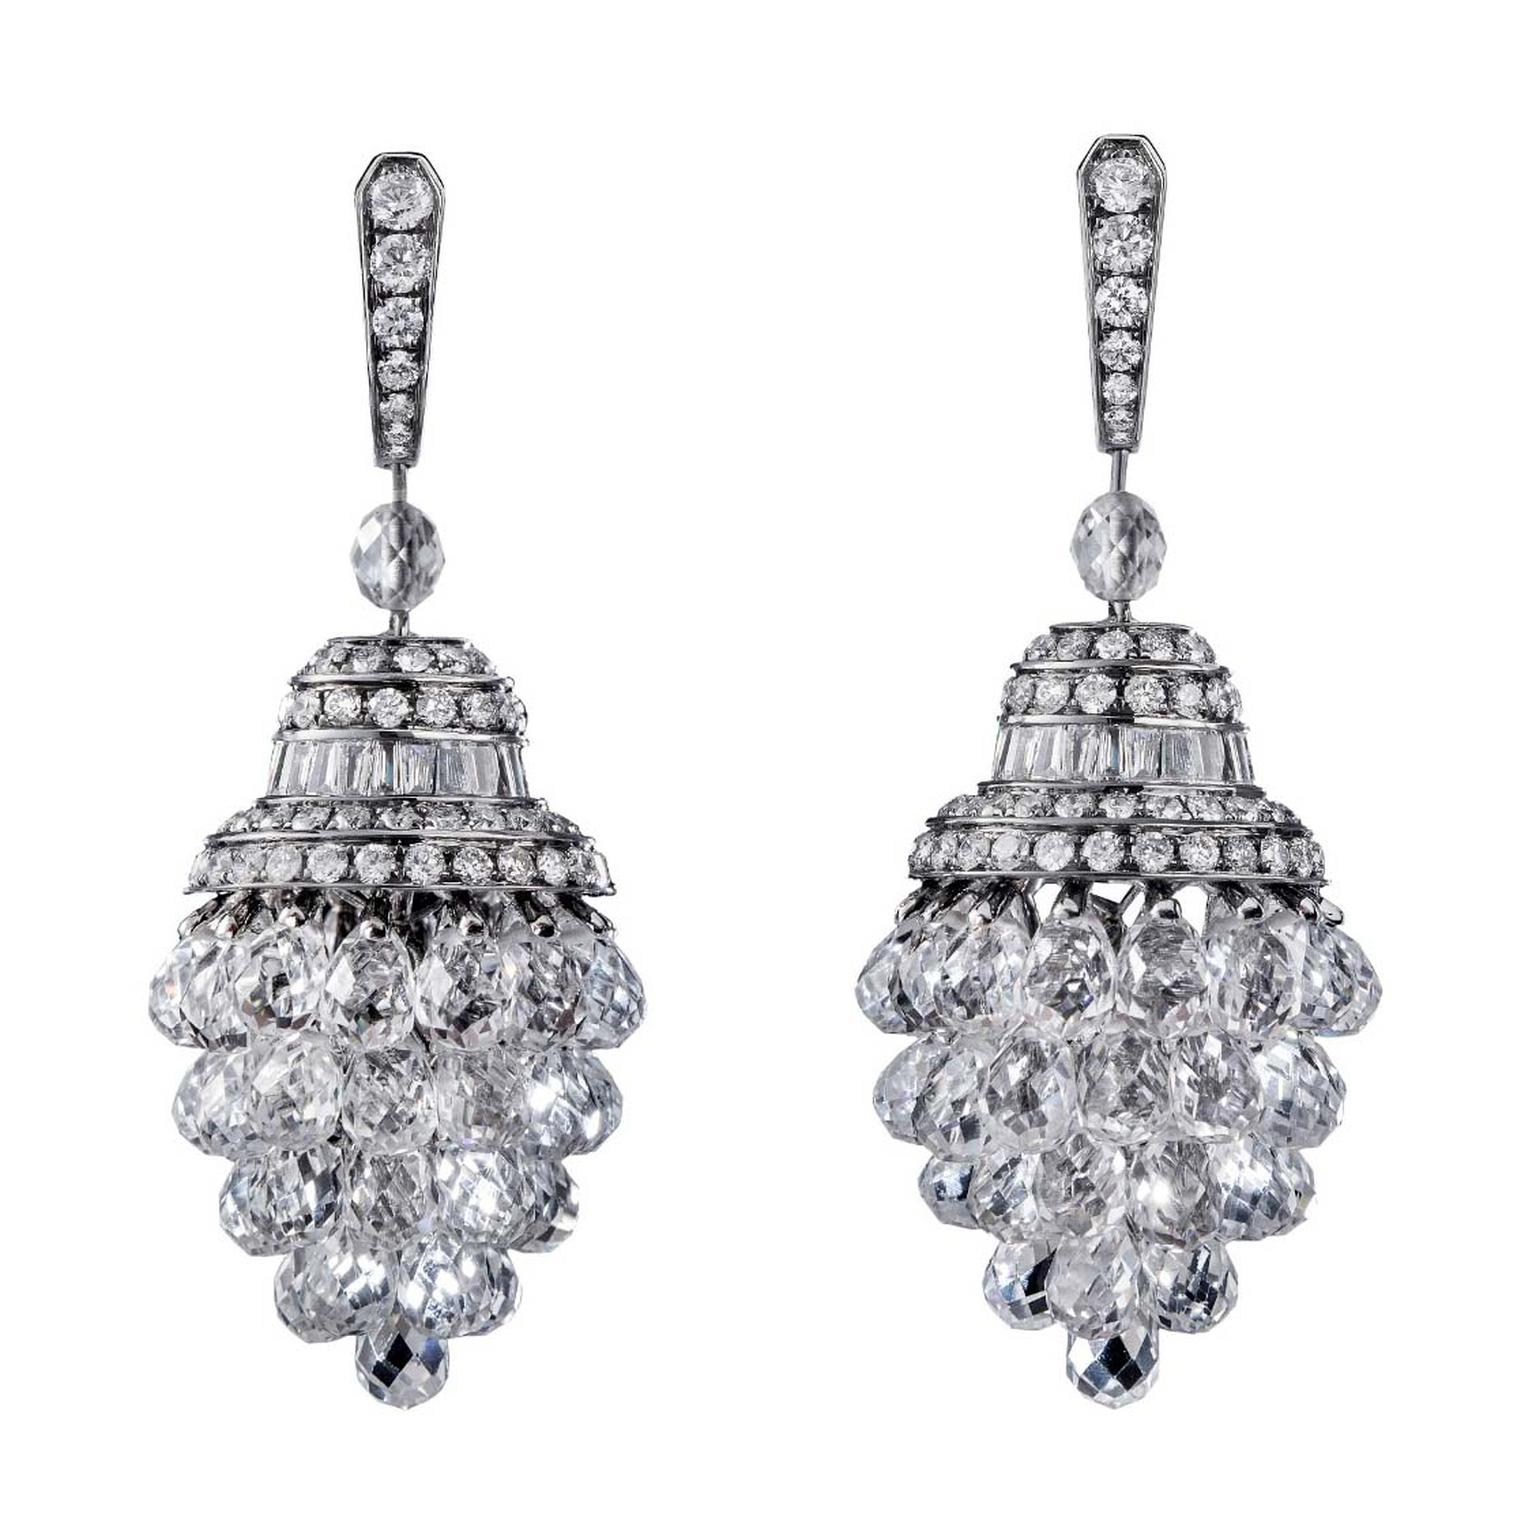 The Chandeliers earrings from No. THIRTY THREE in 18 carat black gold with white sapphire briolettes and white diamonds